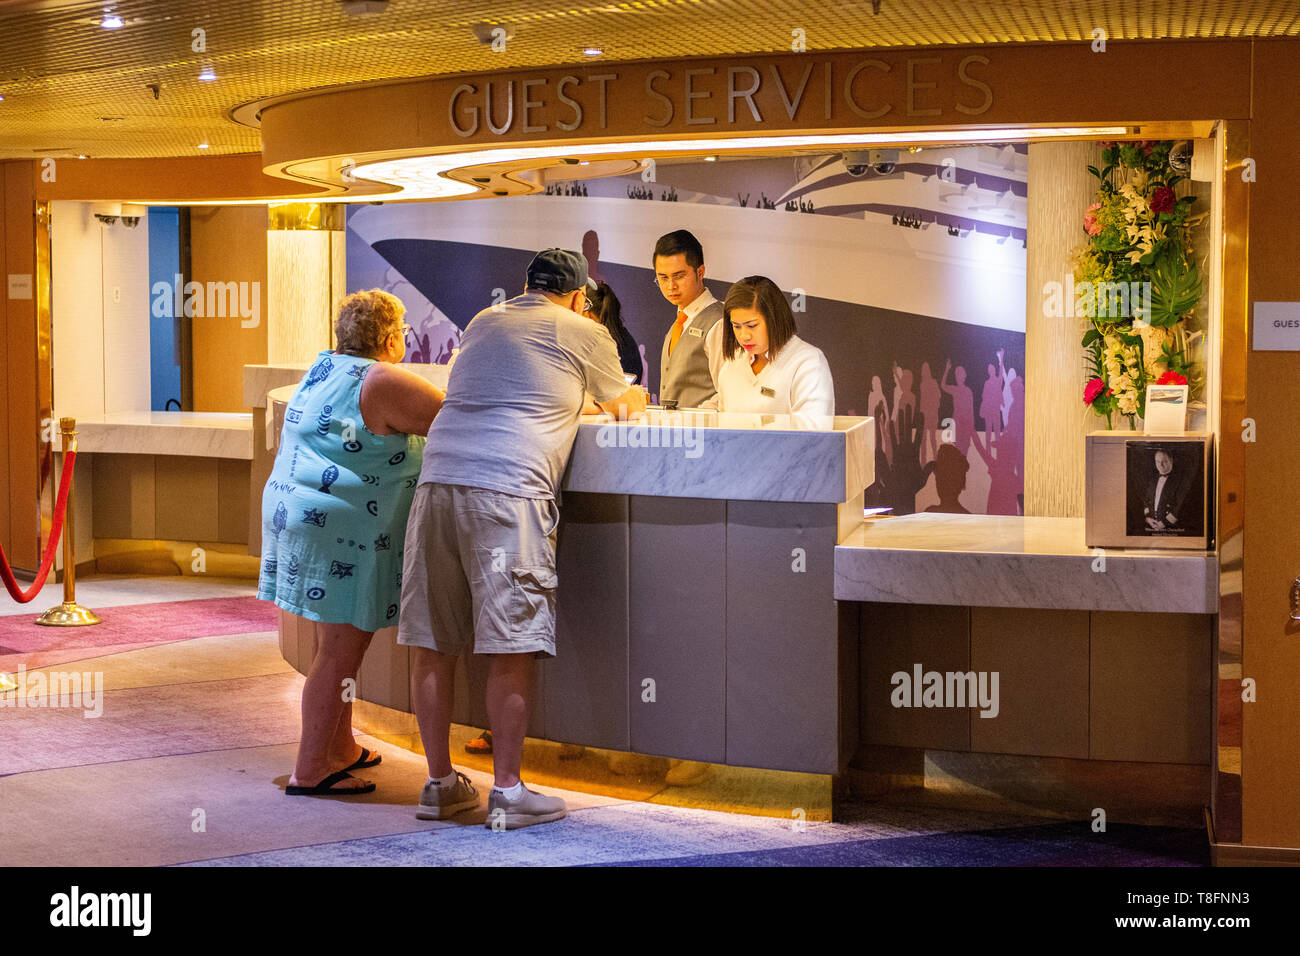 A couple on the cruise ship Eurodam go to the front desk to ask for some help, Hawaii, USA. Stock Photo